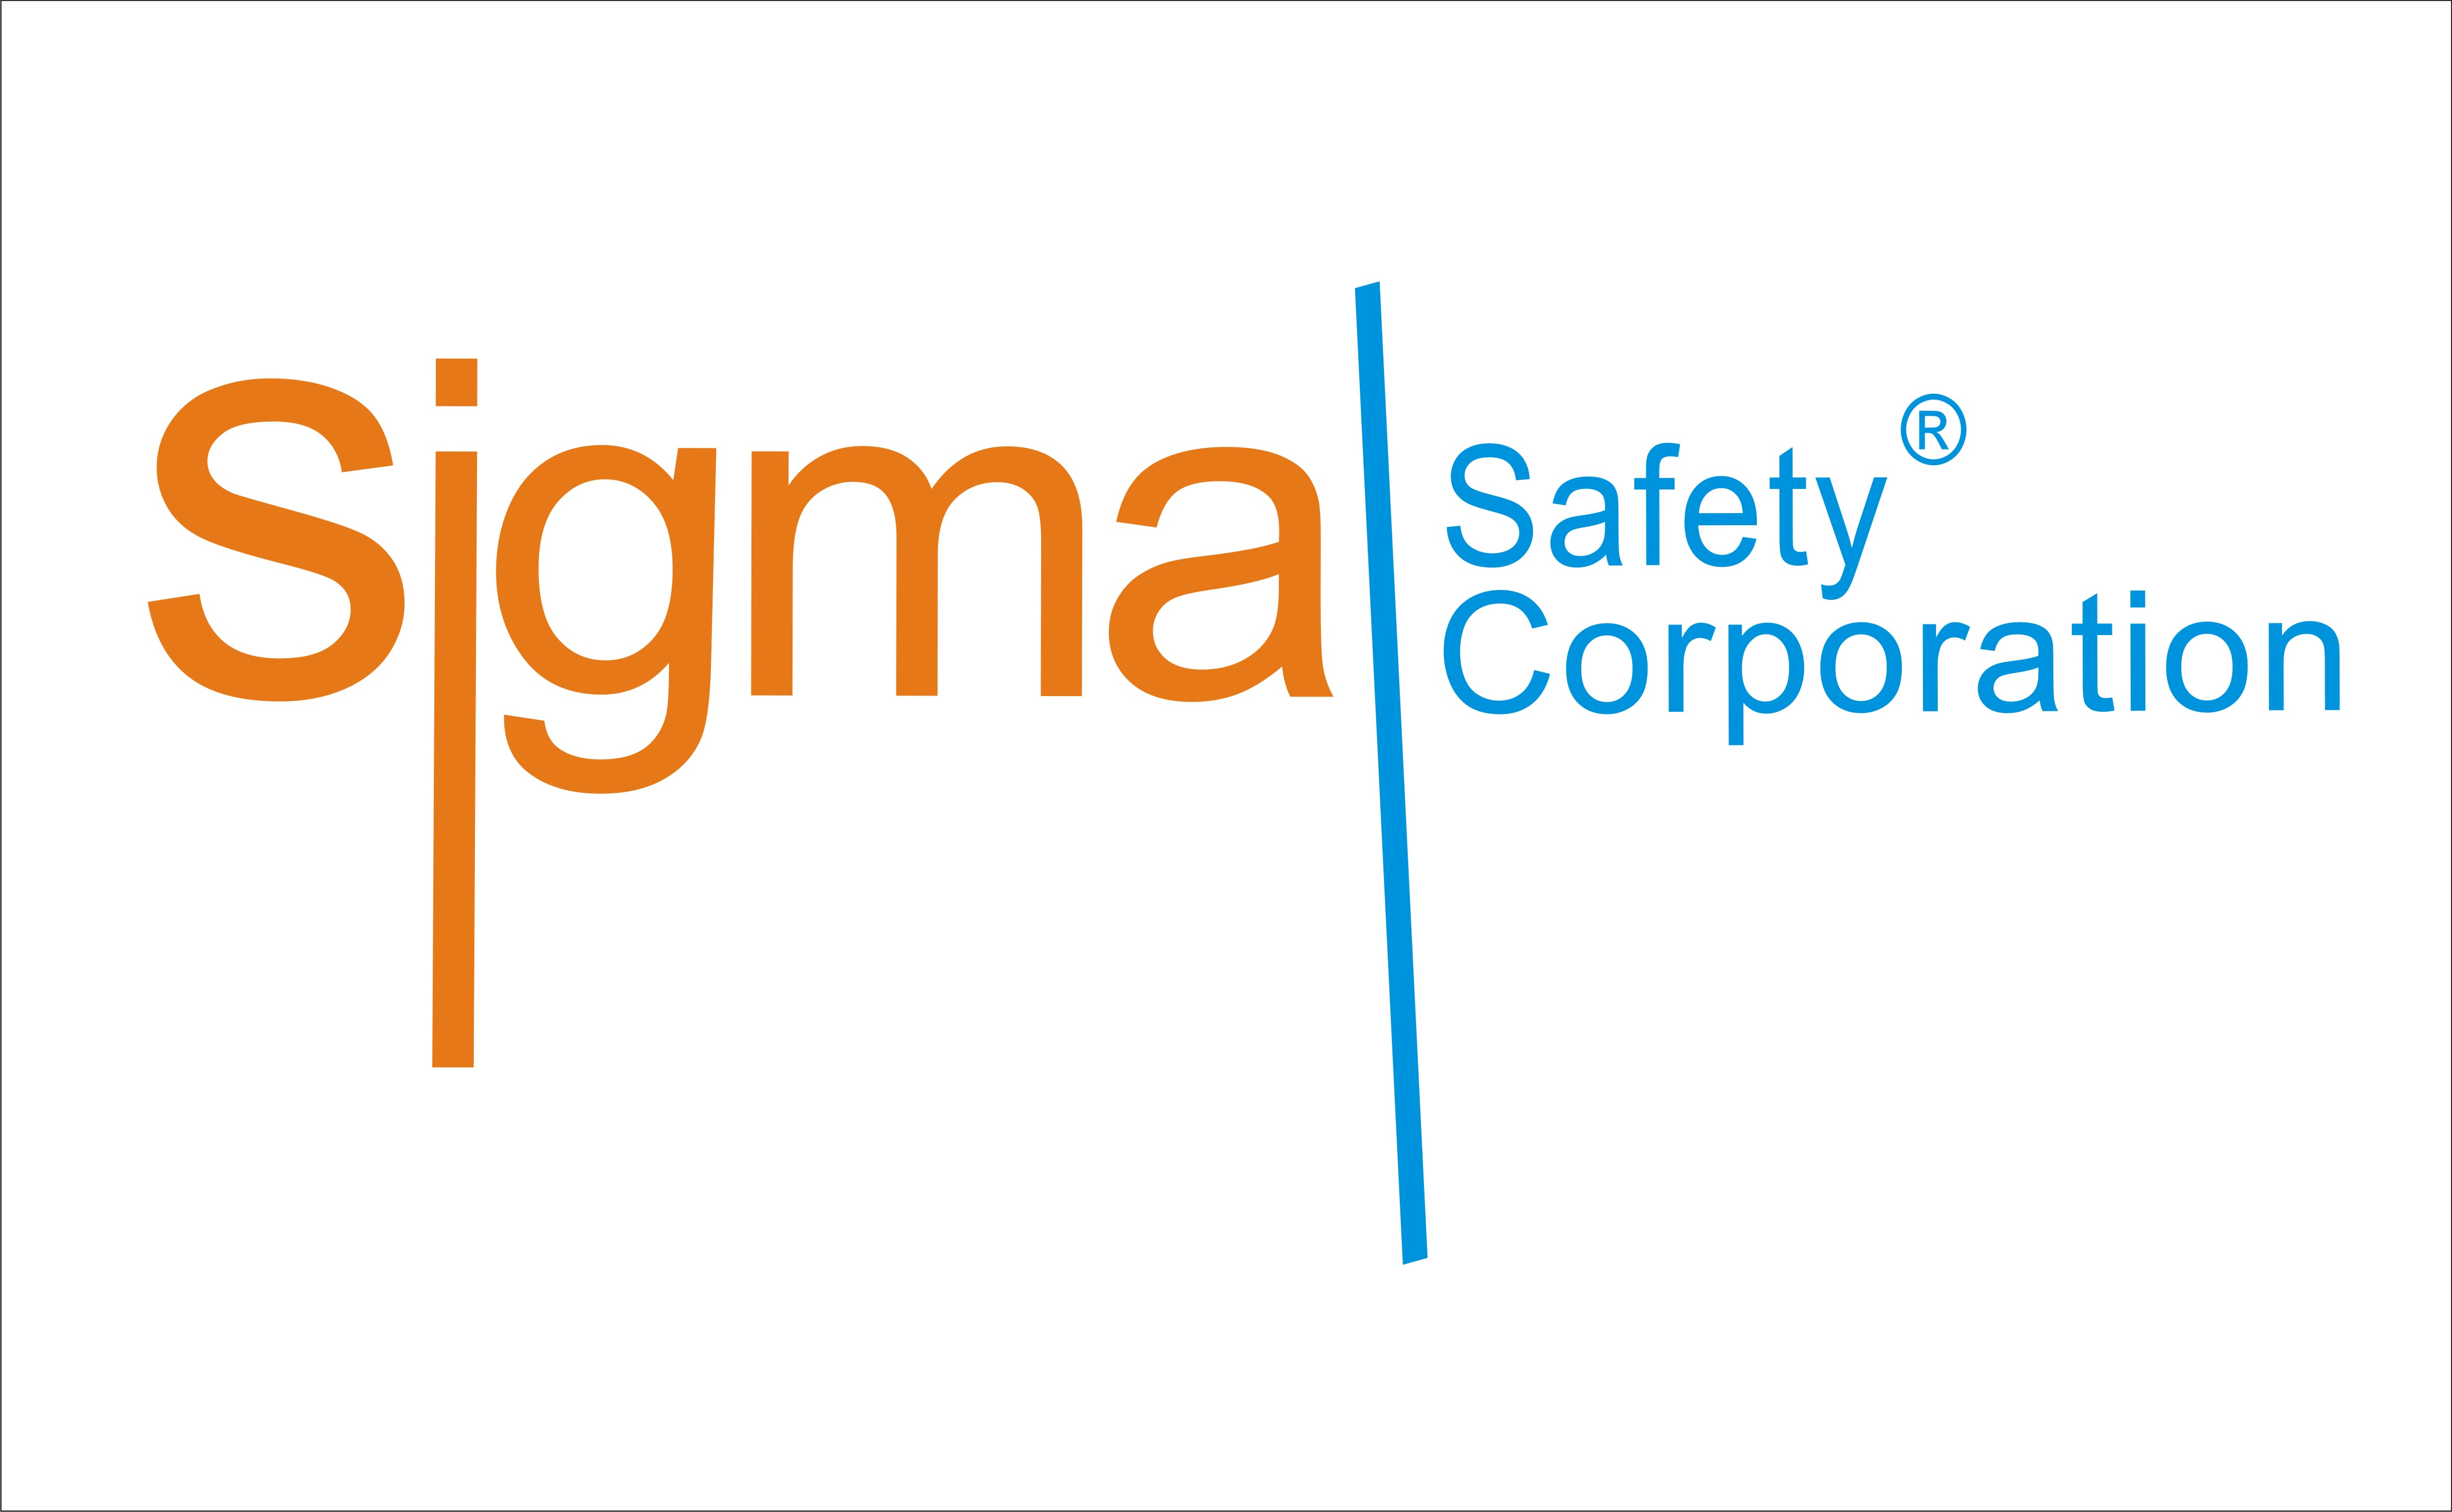 Logo Design by Eic Limber - Entry No. 118 in the Logo Design Contest Creative Logo Design for Sigma Safety Corporation.